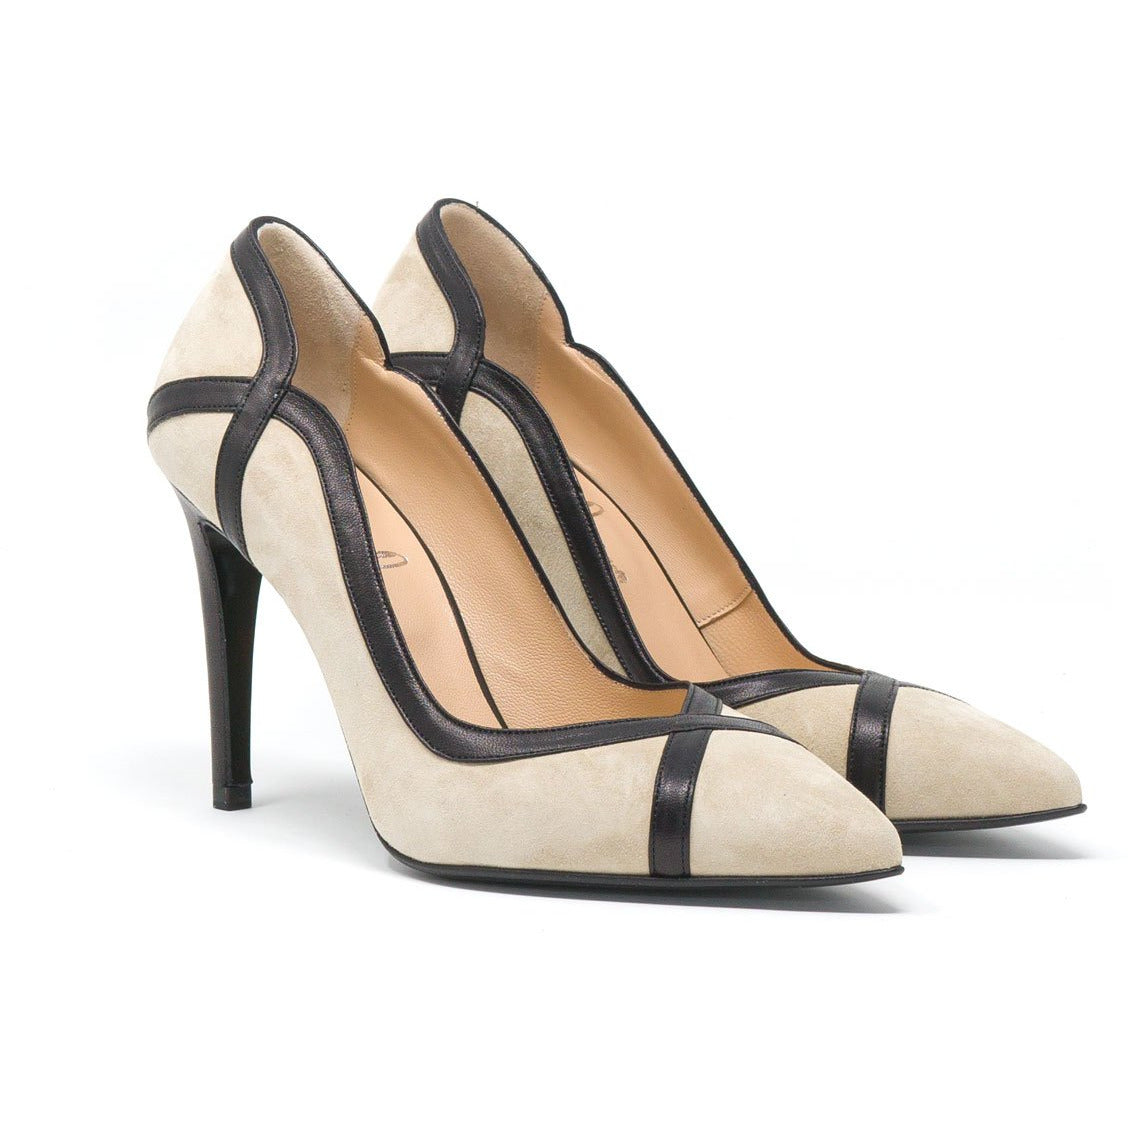 DDL3906 T90 Women Pumps - New Spring Summer 2020 Collection